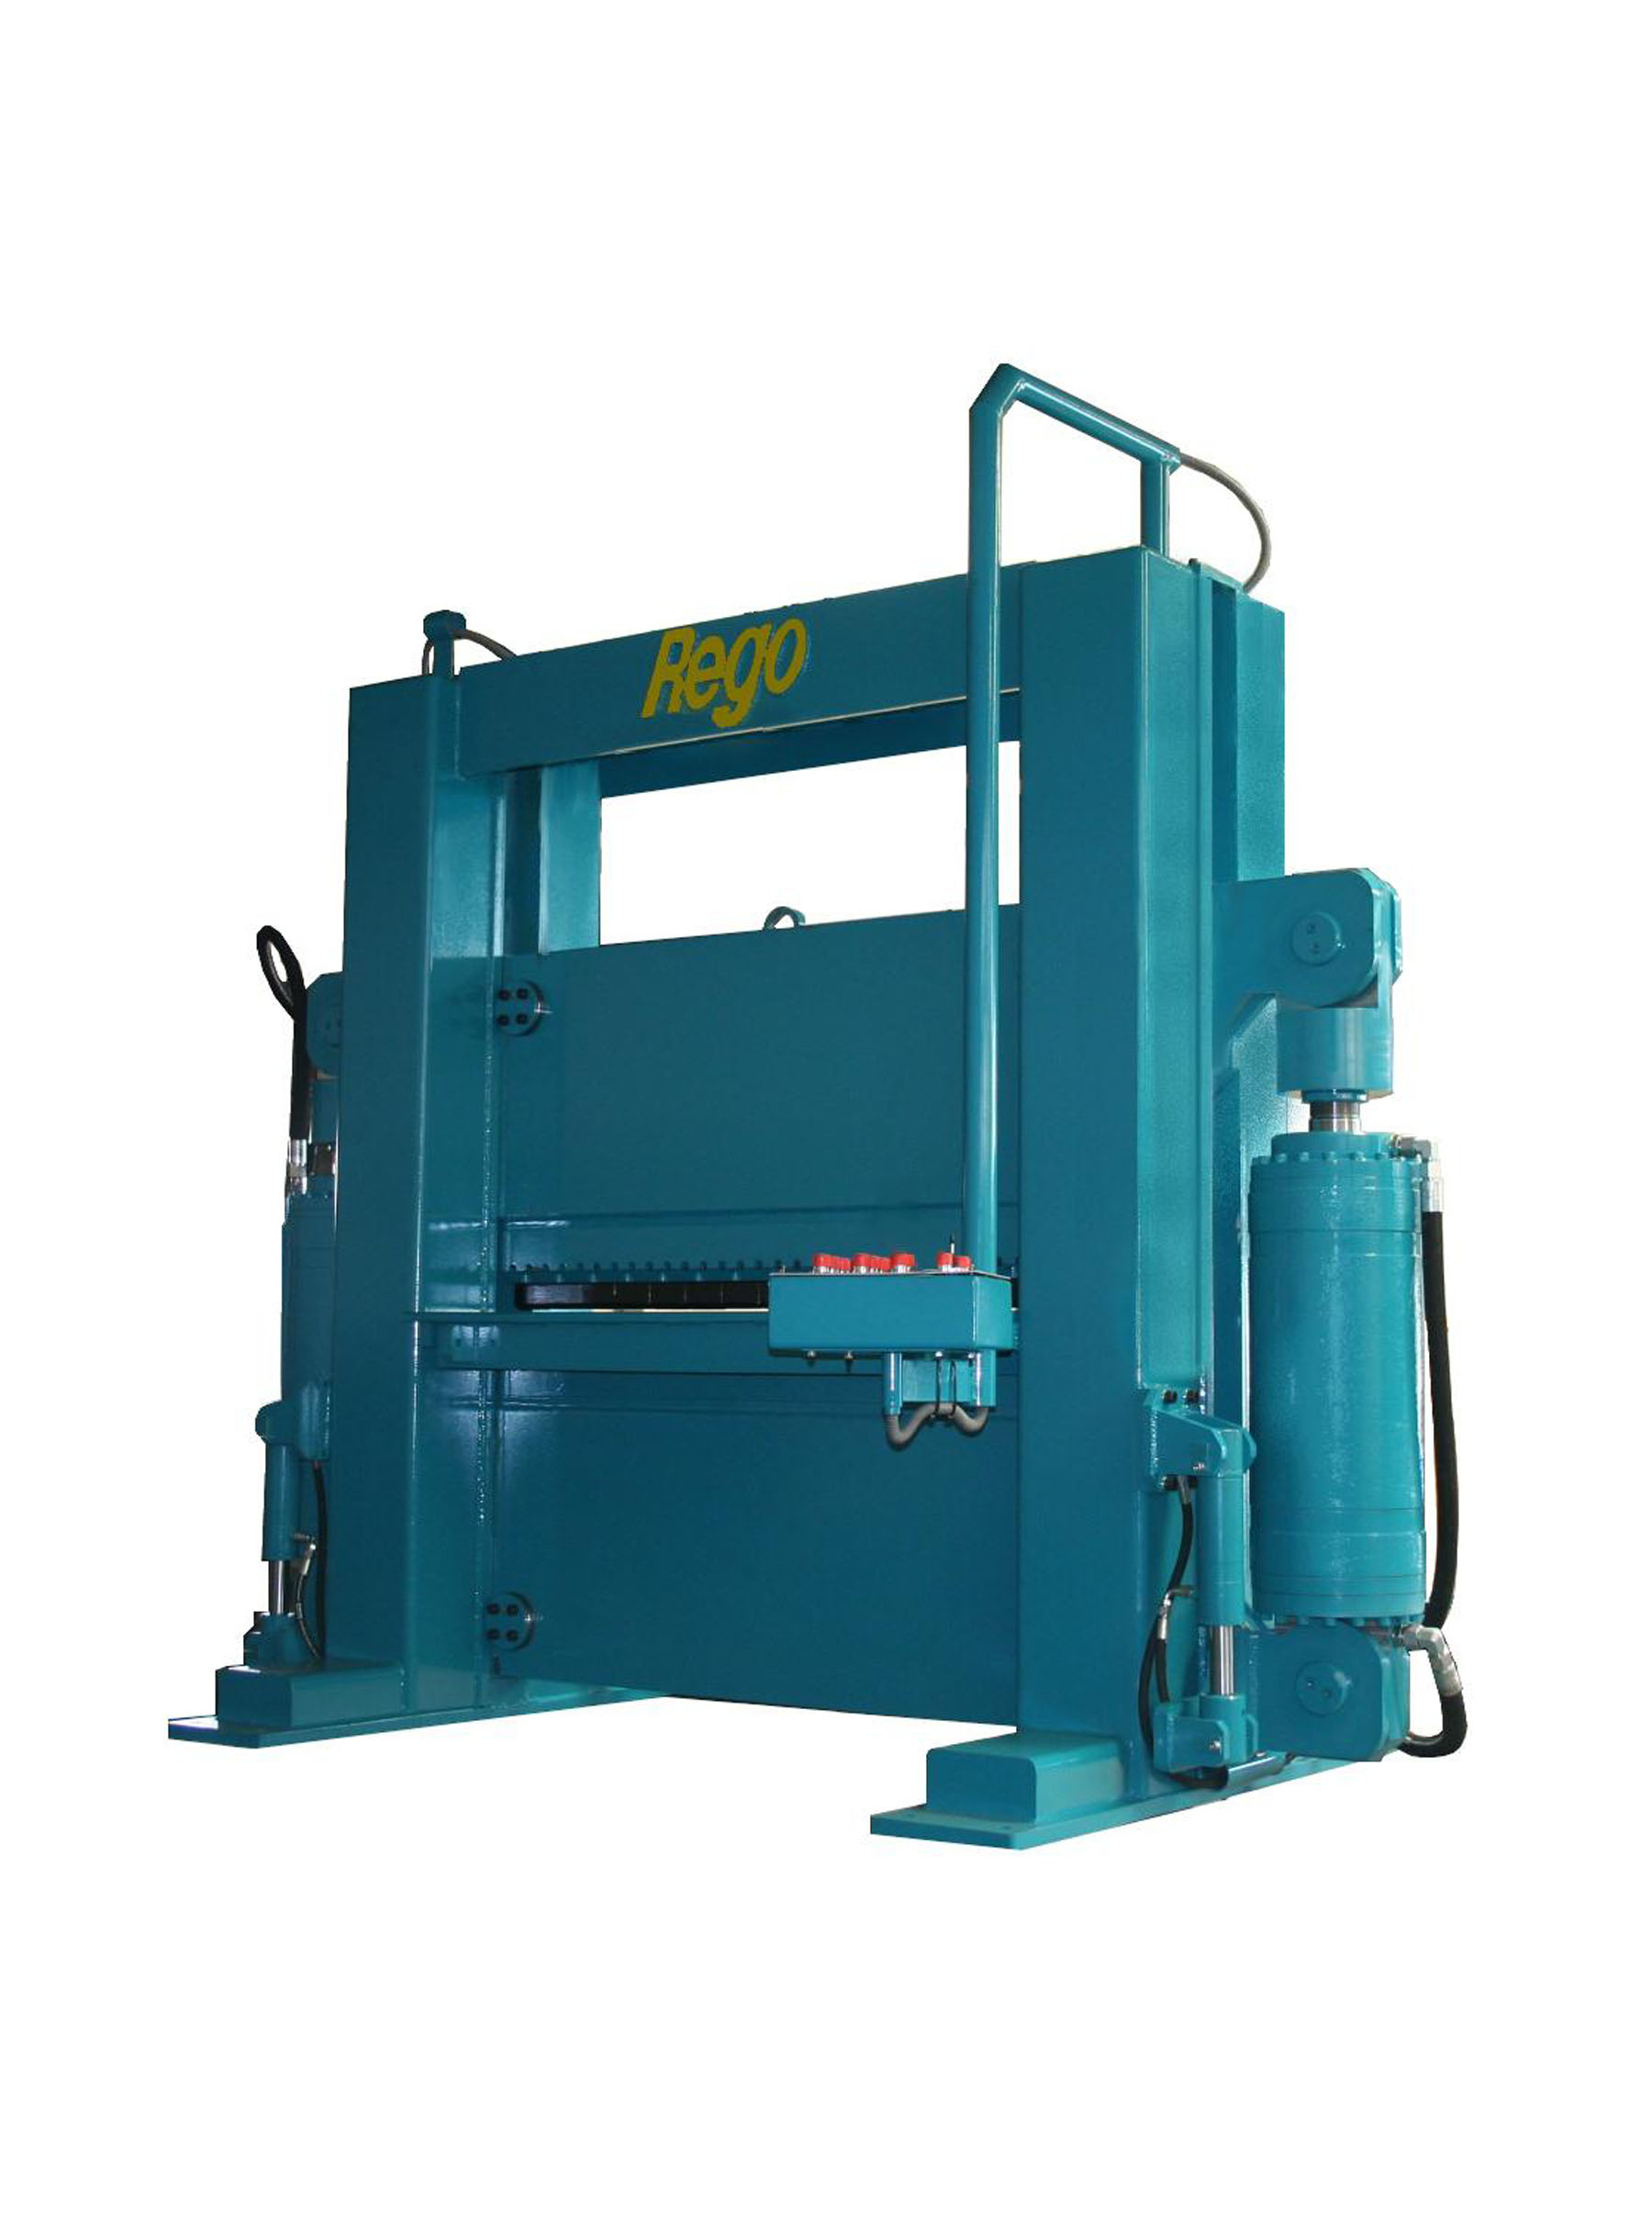 P250 Splitting Machine